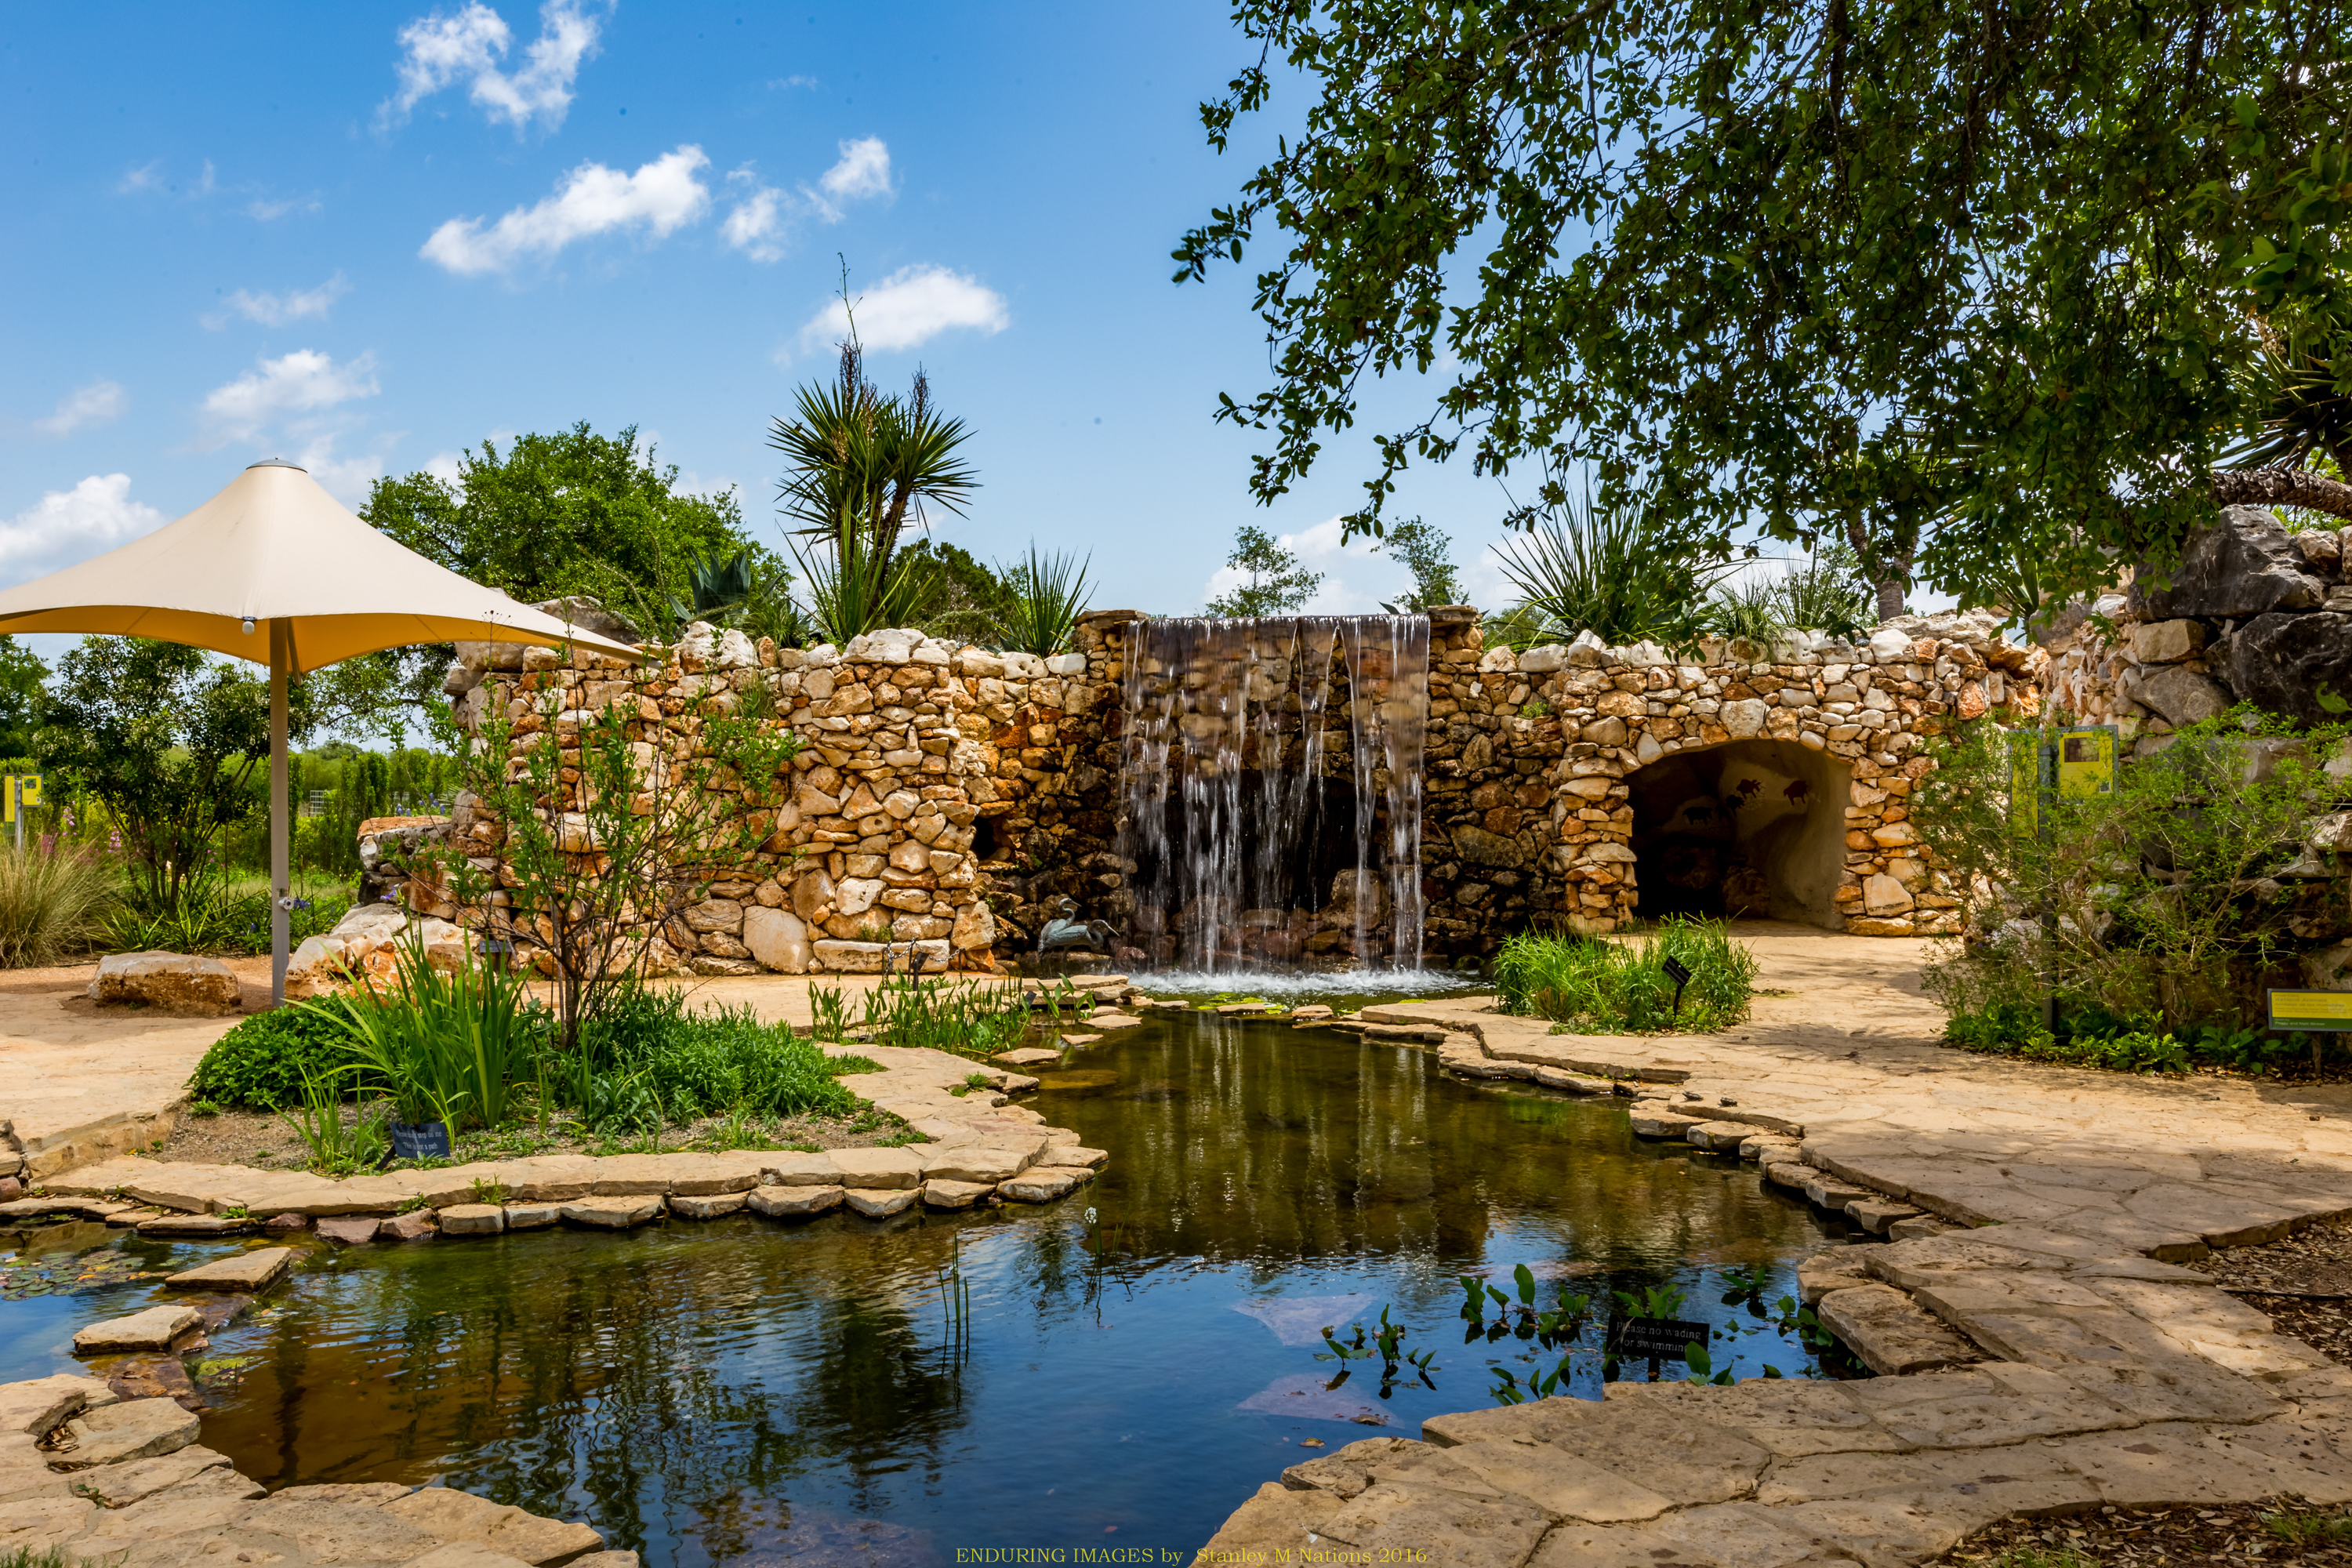 Enduring Images by Stanley Nations - Lady Bird Johnson Wildflower Center